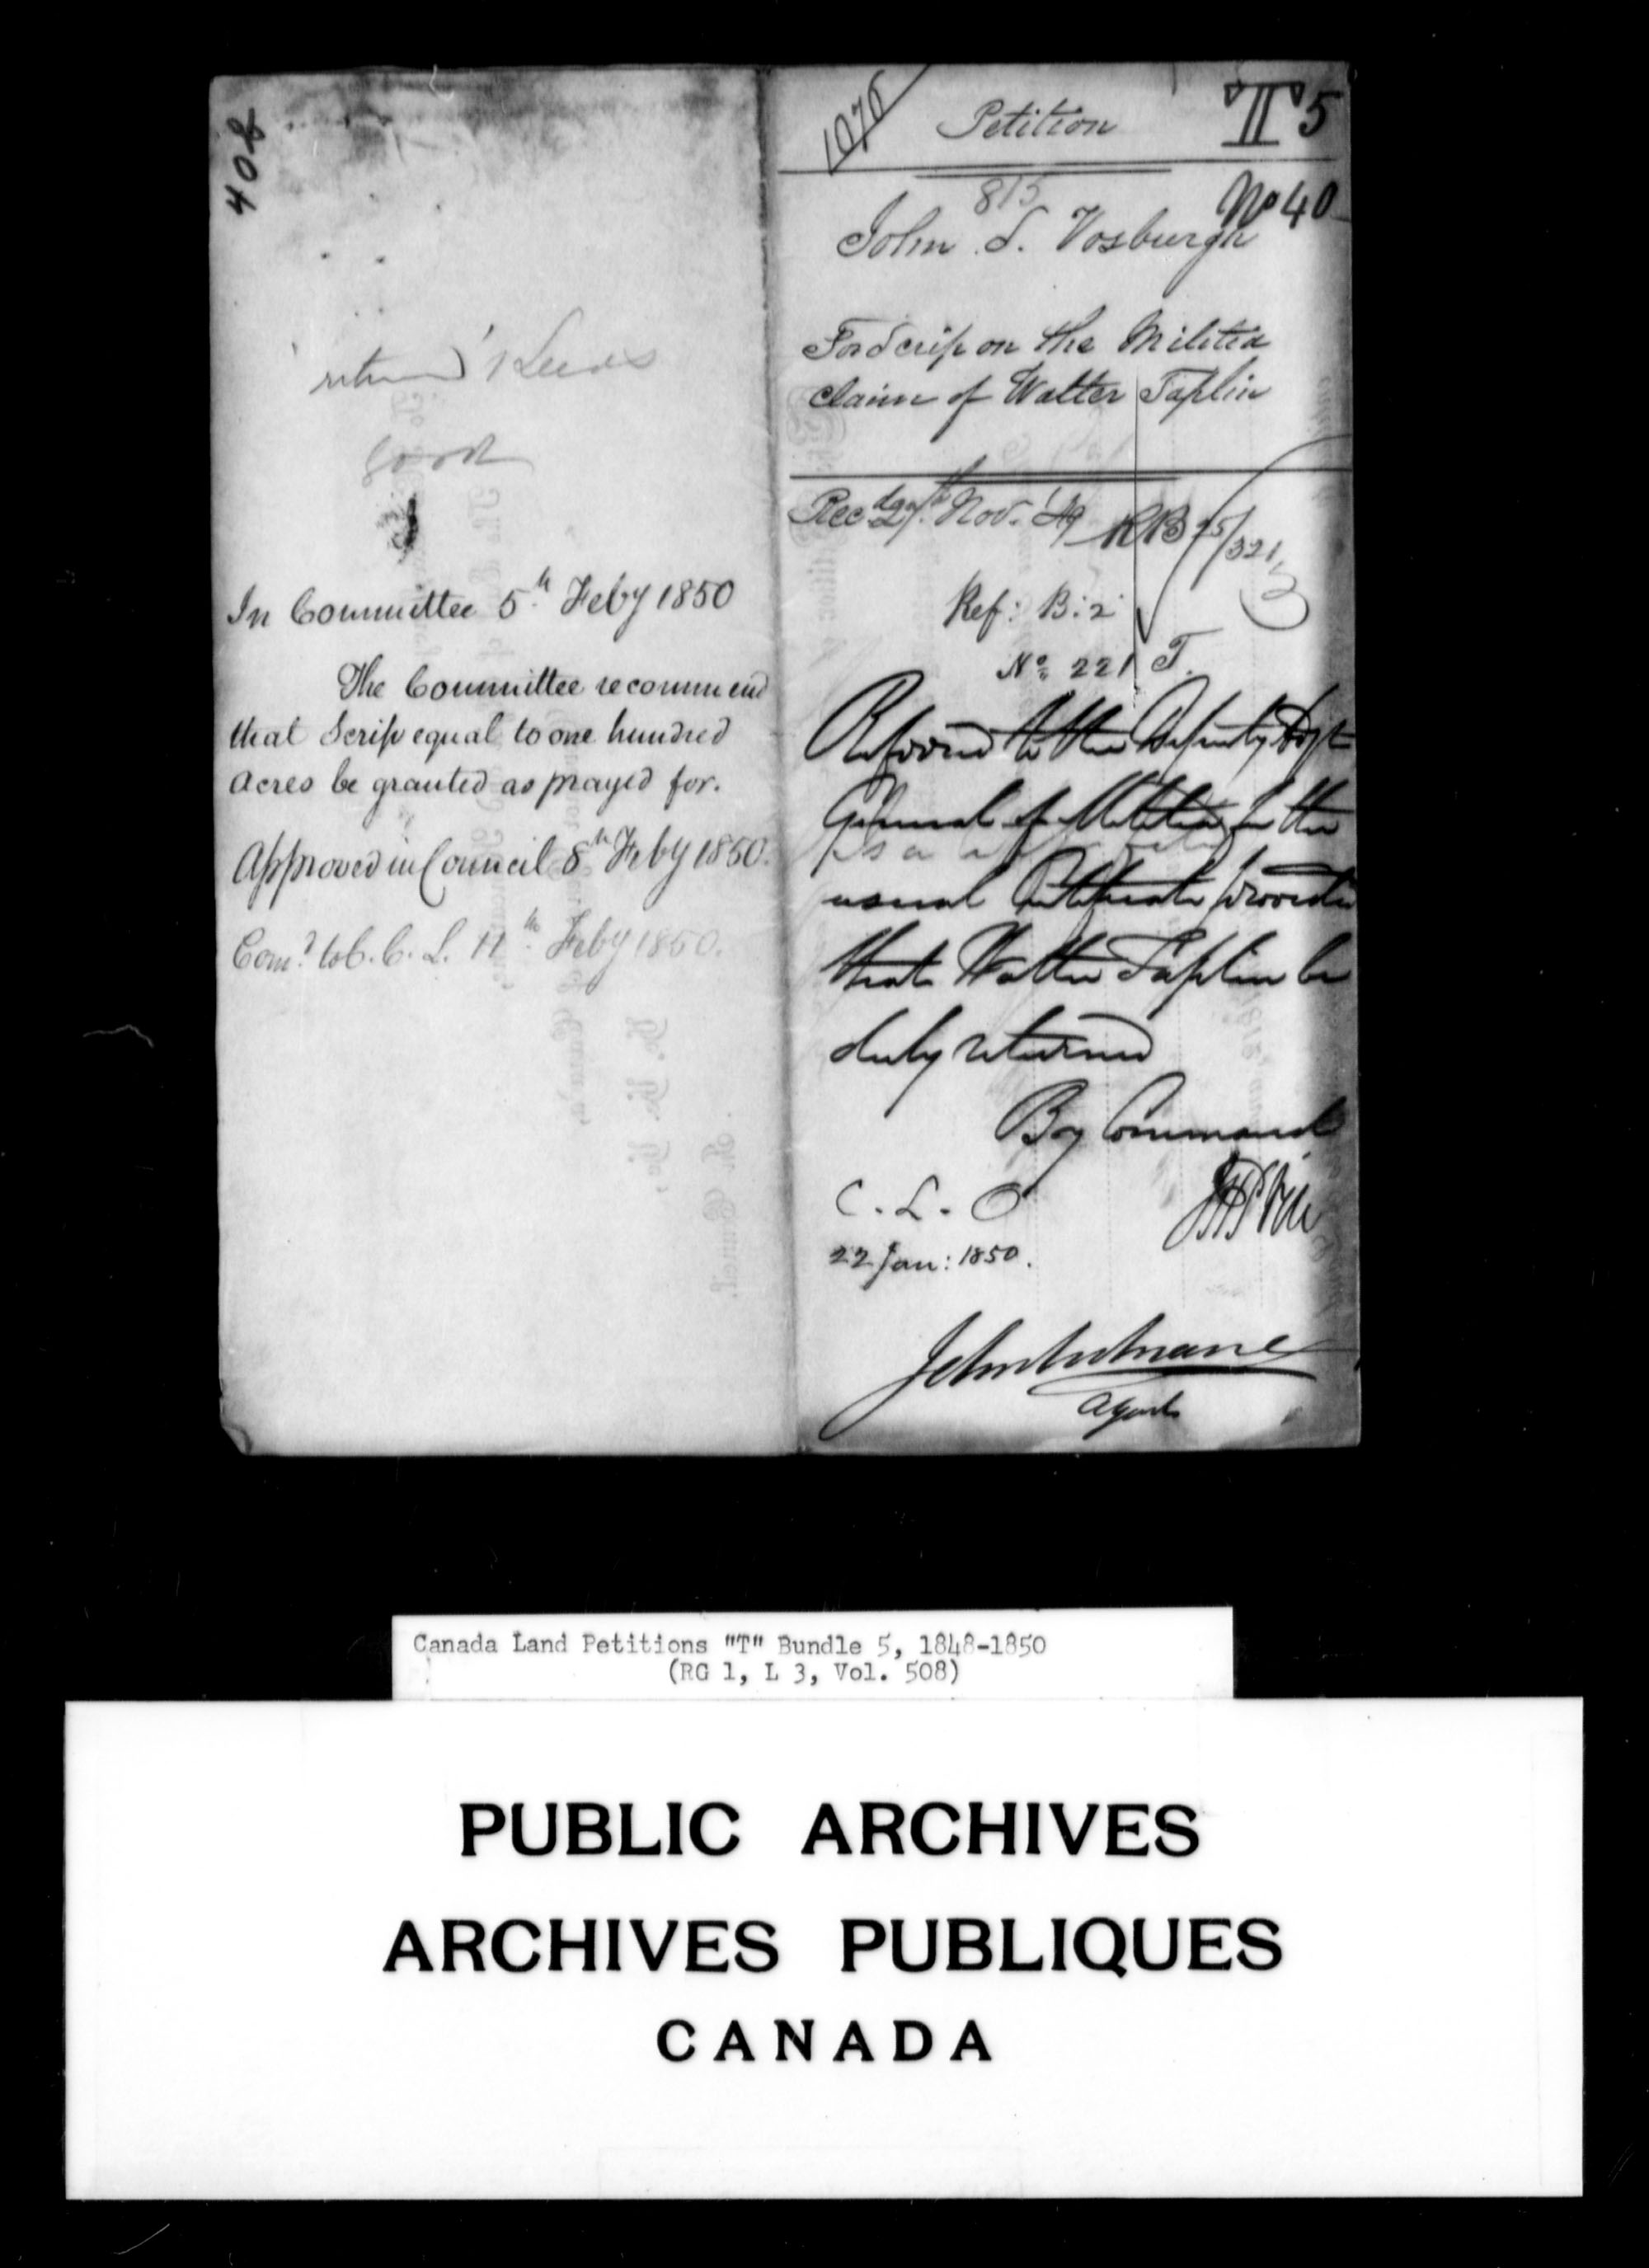 Title: Upper Canada Land Petitions (1763-1865) - Mikan Number: 205131 - Microform: c-2839